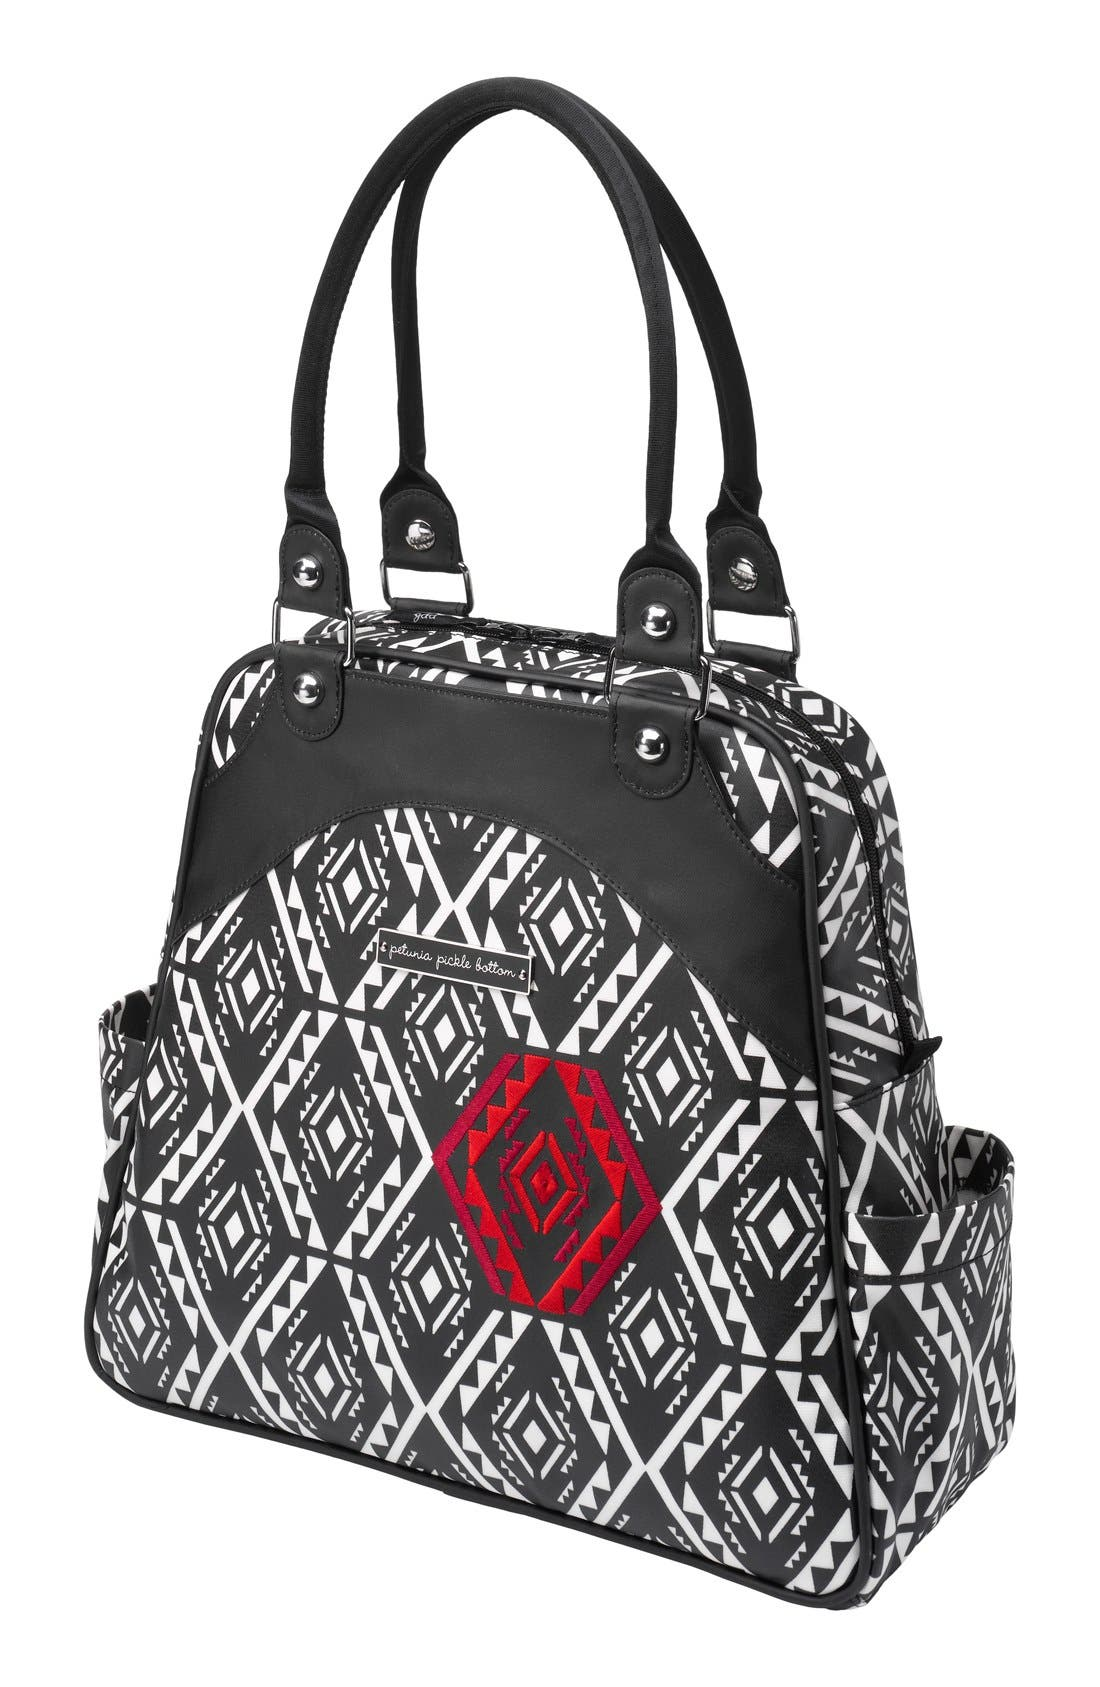 Alternate Image 1 Selected - Petunia Pickle Bottom 'Glazed Sashay' Convertible Diaper Bag/Satchel